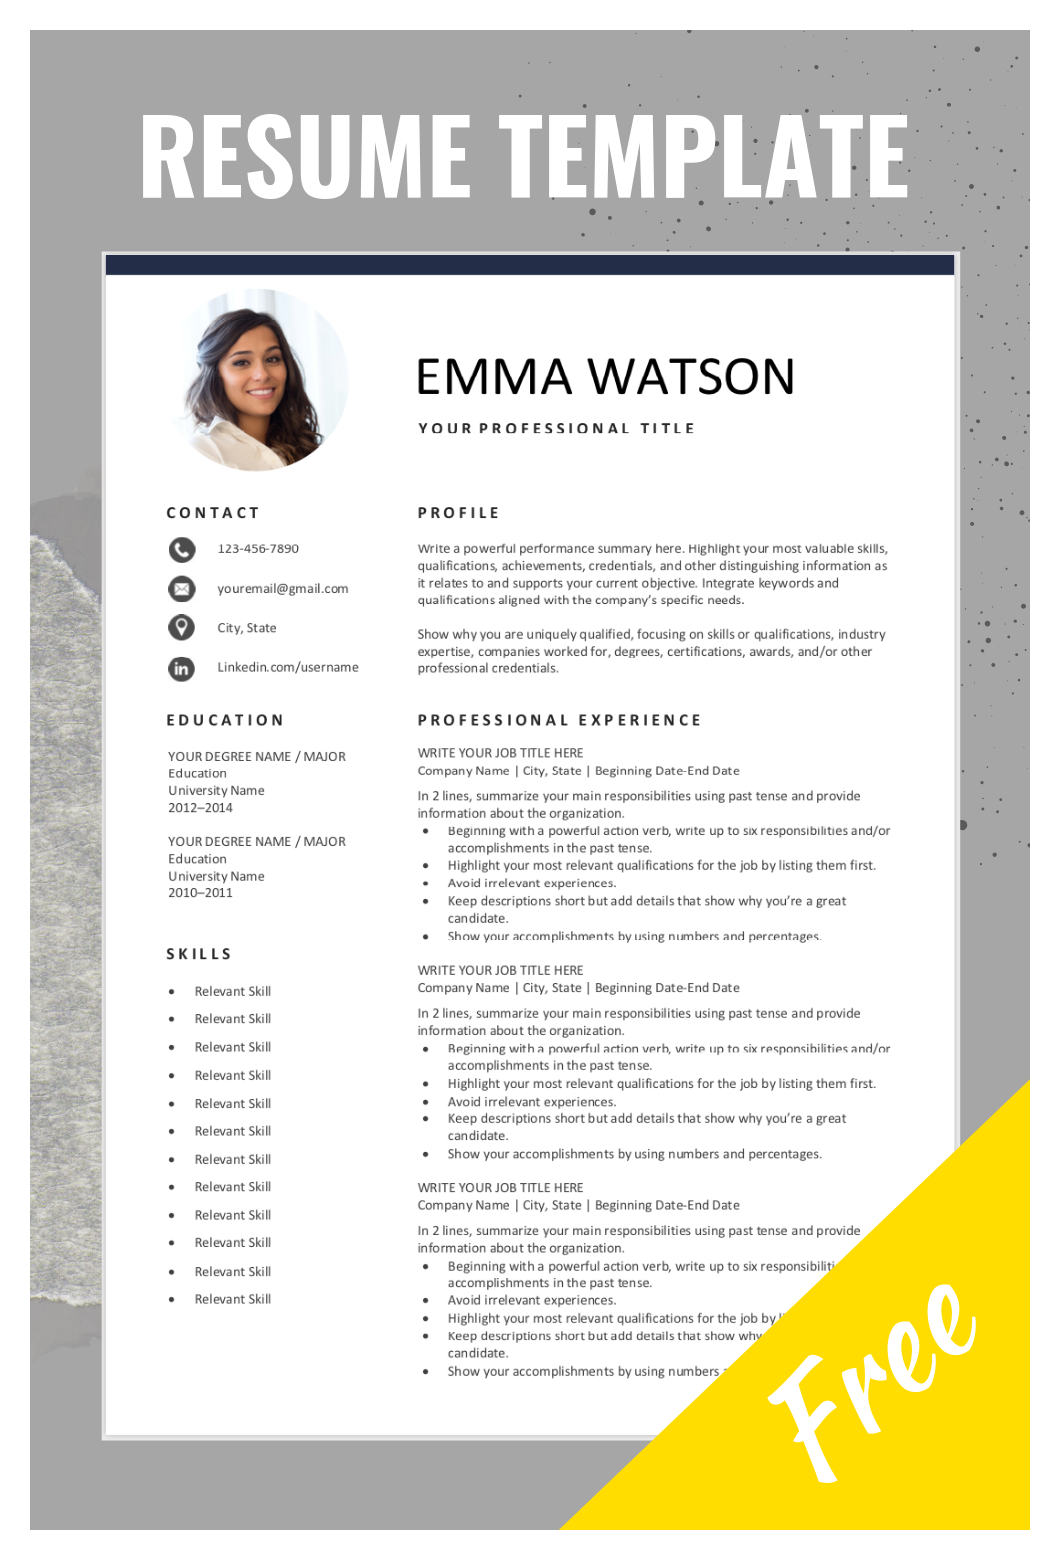 Free Resume Template With Photo Cv Template Free Download Our Free Resume Tem Free Resume Template Word Teacher Resume Template Teacher Resume Template Free